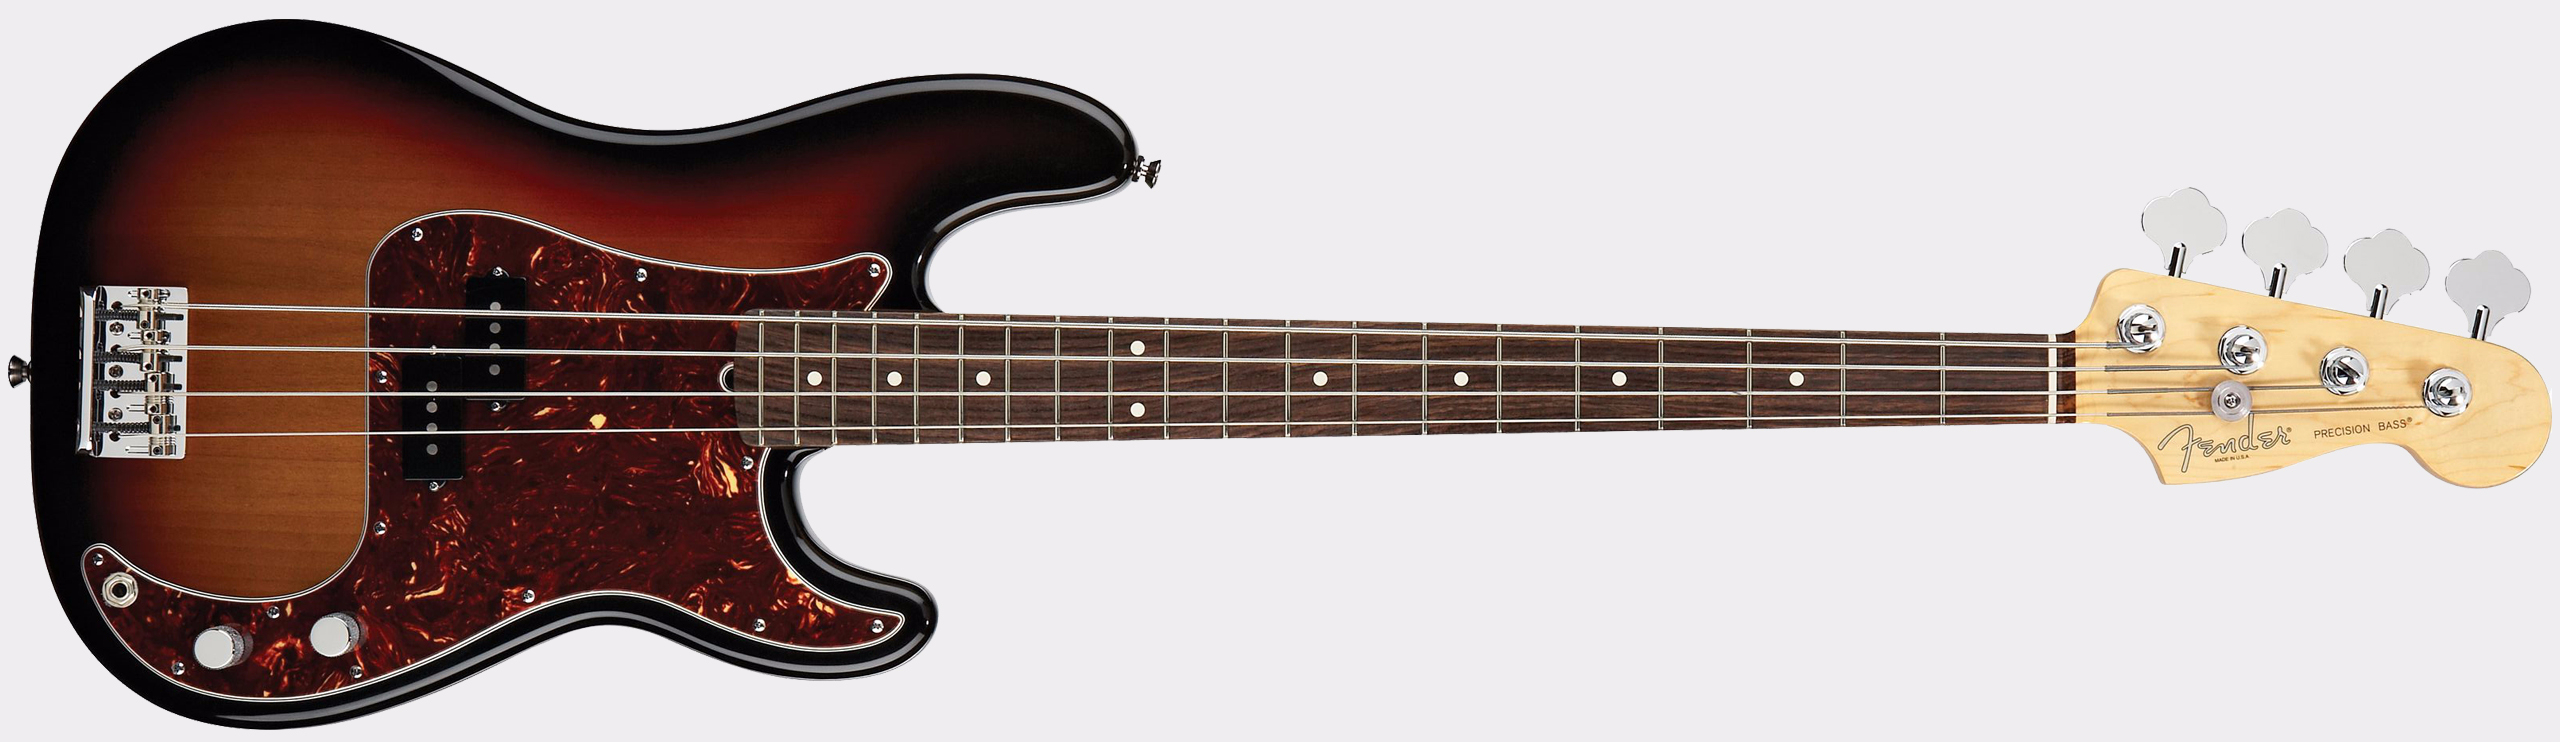 FENDER American Standard Precision Bass RW 3-Color Sunburst